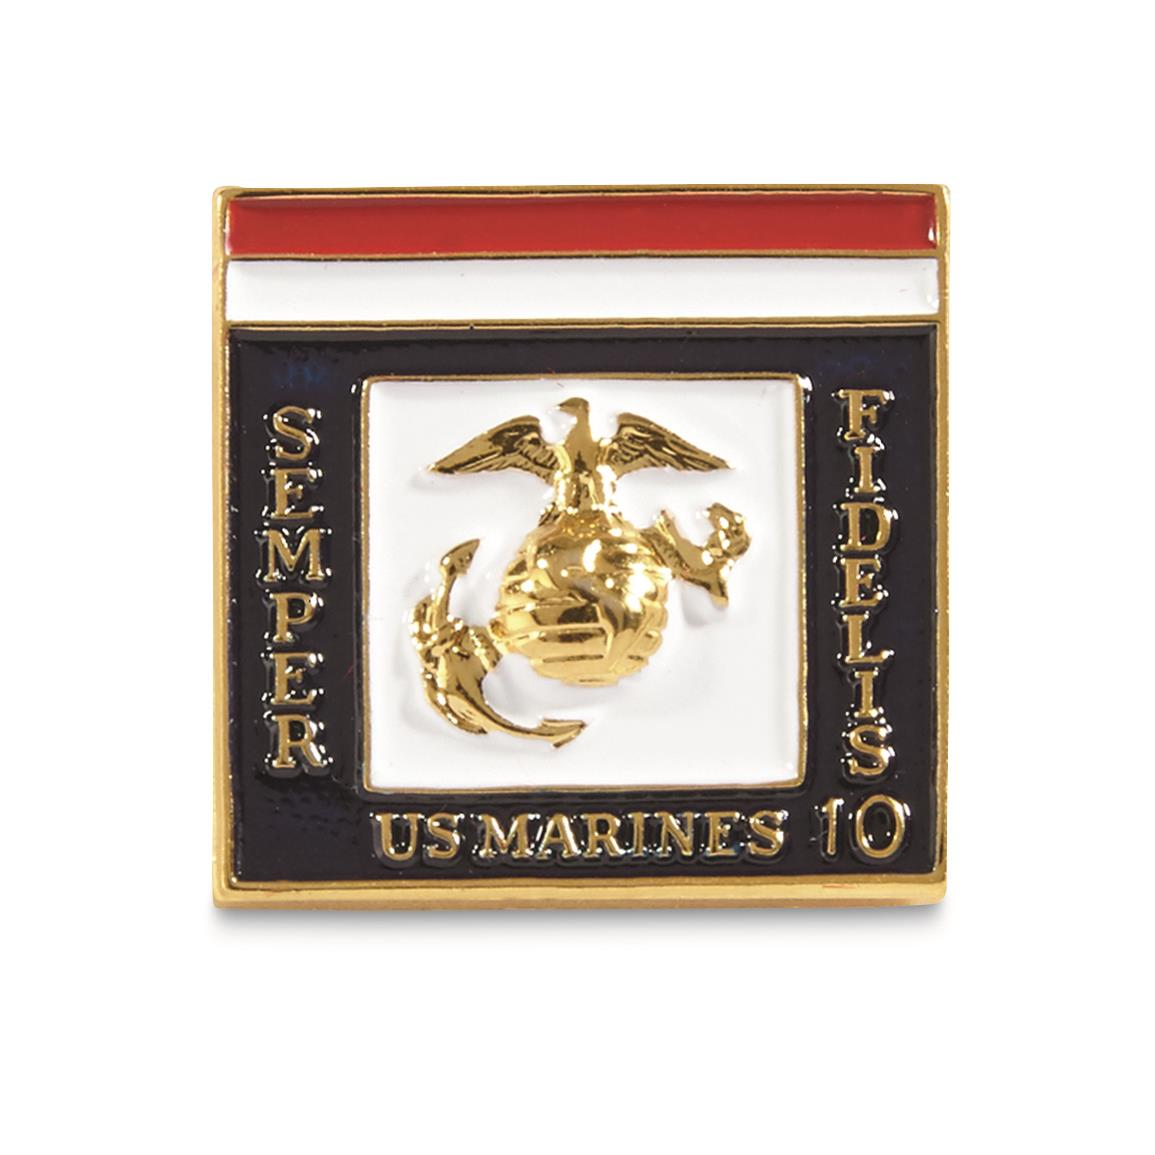 Awarded to USMC civilians for 10 years service